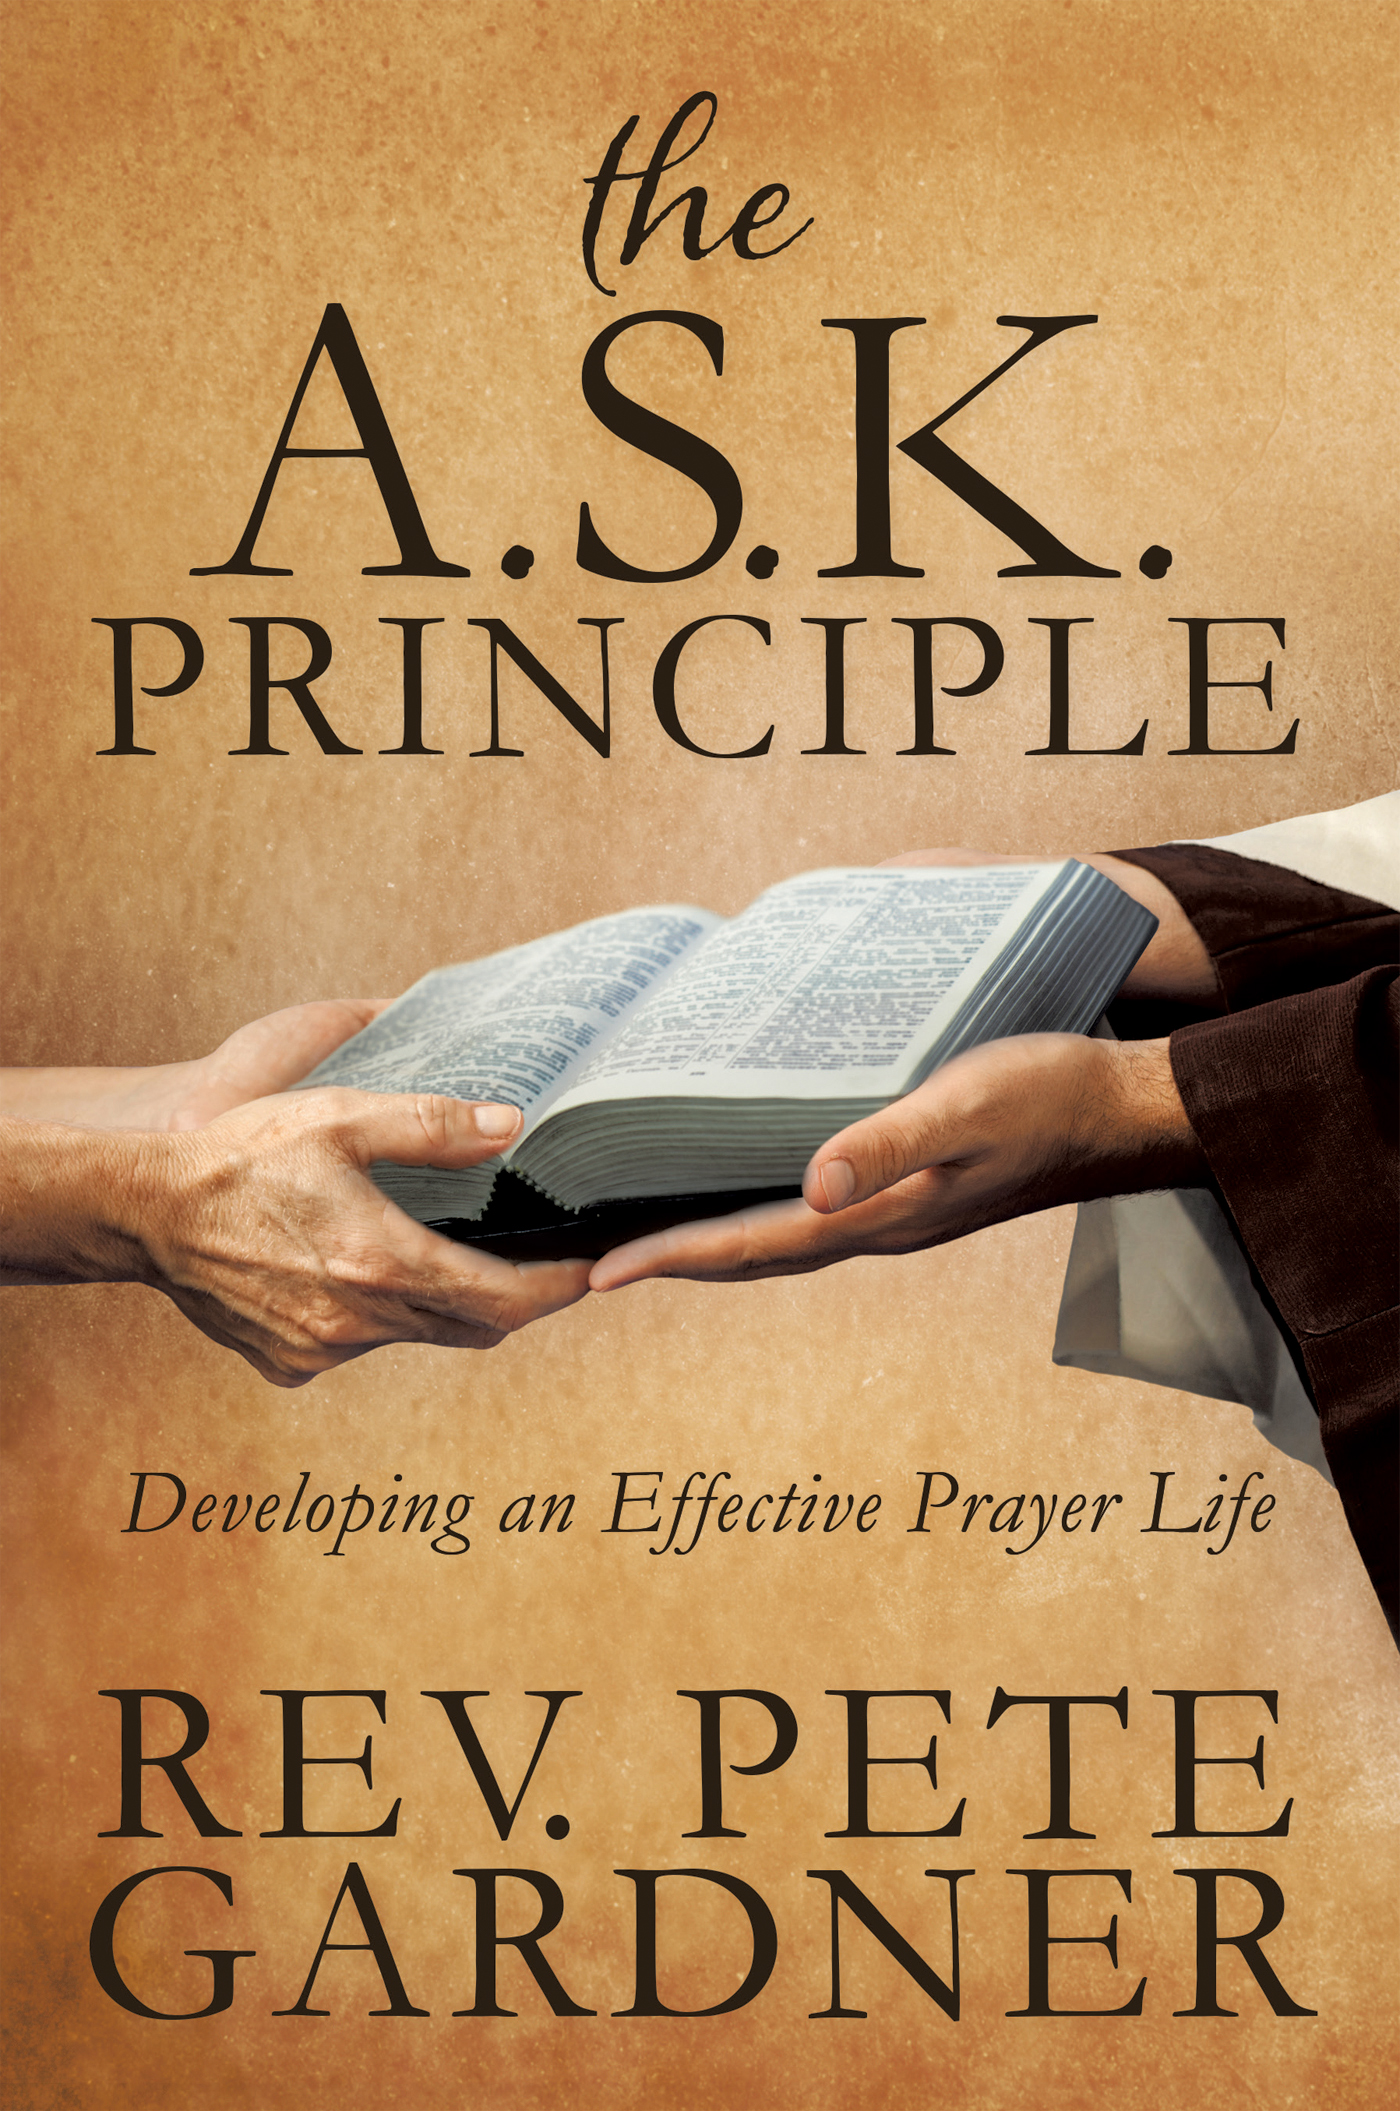 Developing a more effective prayer life